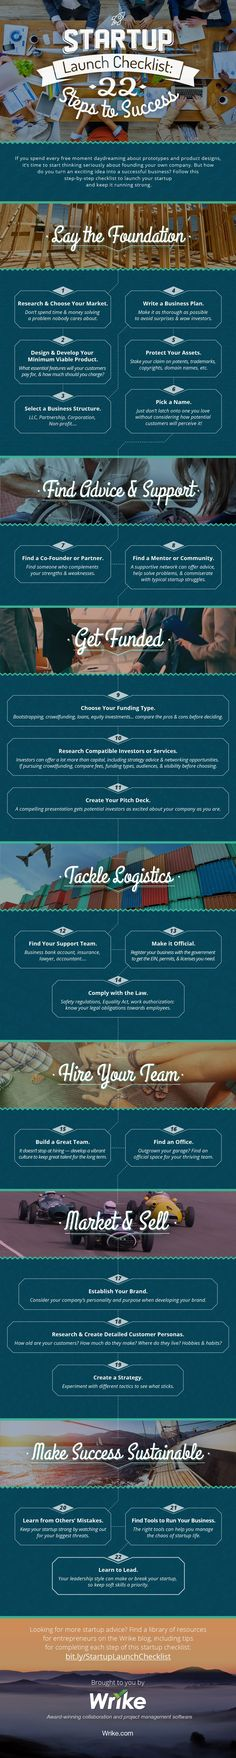 Startup Launch Checklist: 22 Steps to Success #infographic